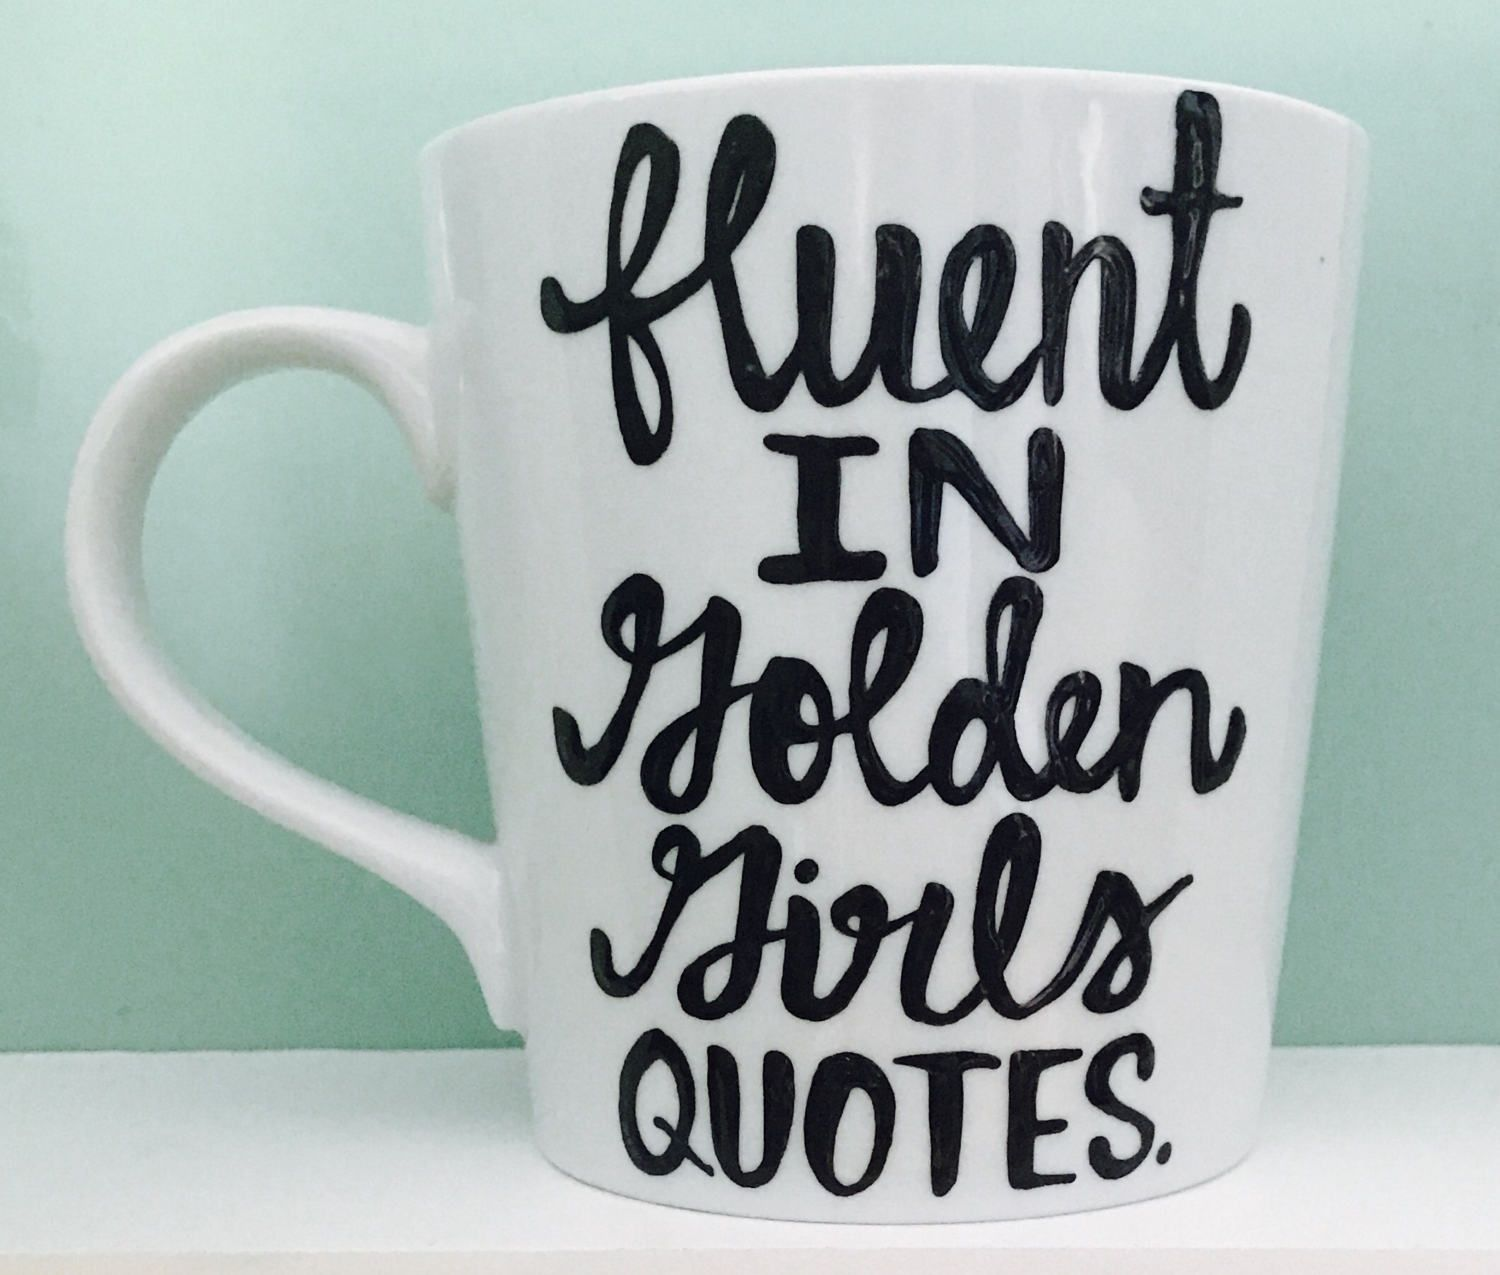 3465d9f9947 Golden Girls Coffee mug- Golden Girls gift- Golden Girls Quotes- funny mug-  thank you for being a friend- fluent in golden girls quotes by PickMeCups  on ...